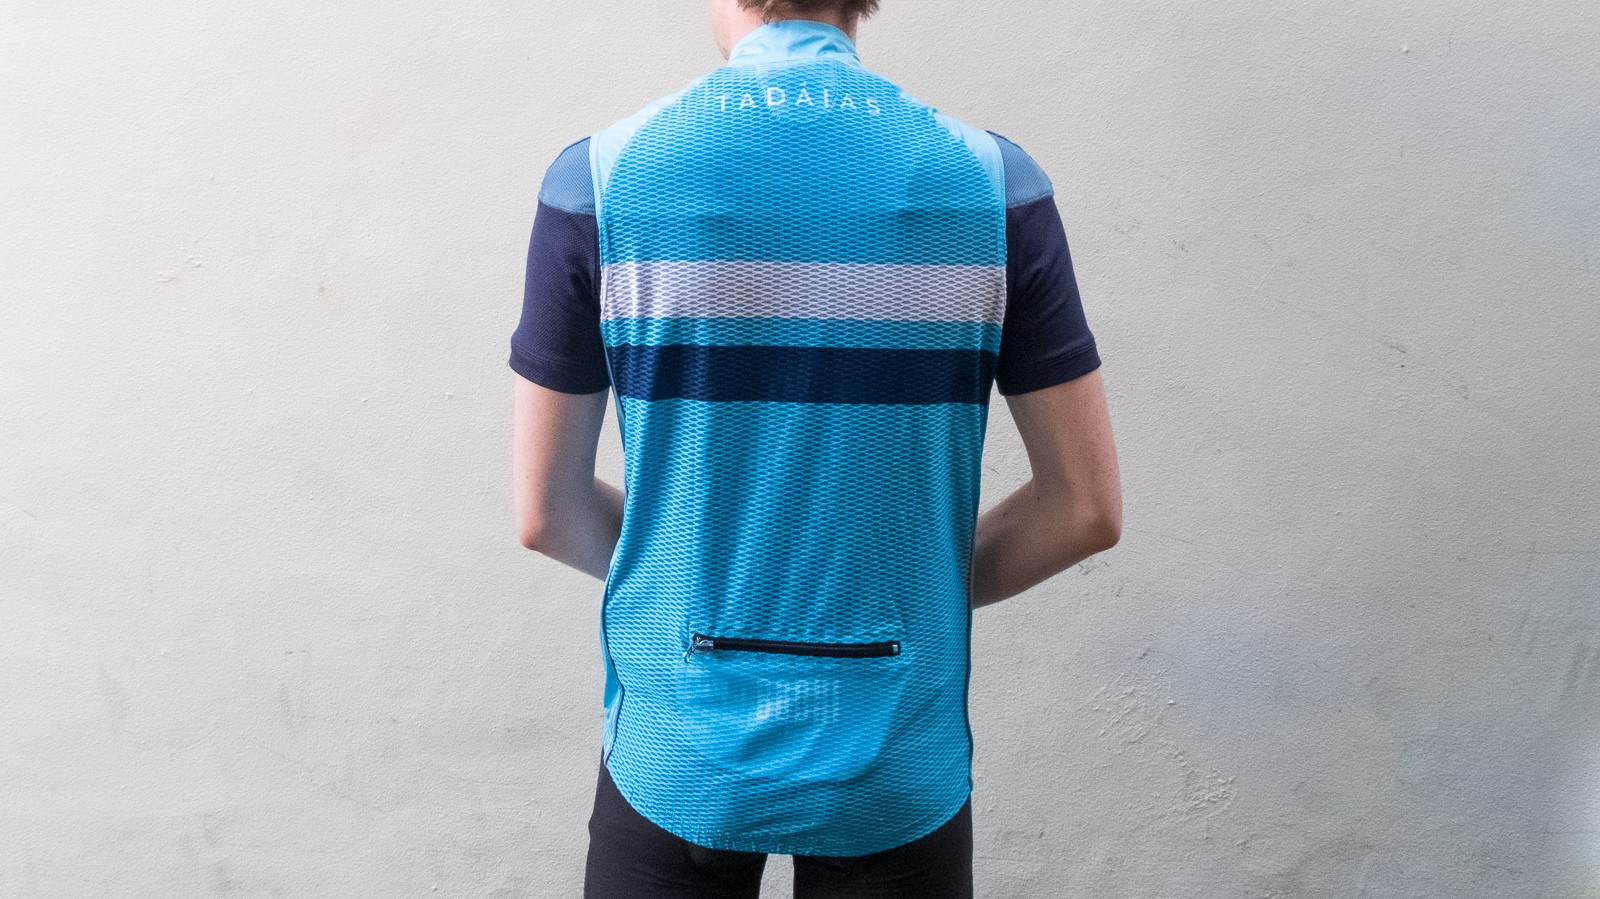 The entire back panel of the jersey is made from a highly breathable, widely spaced mesh